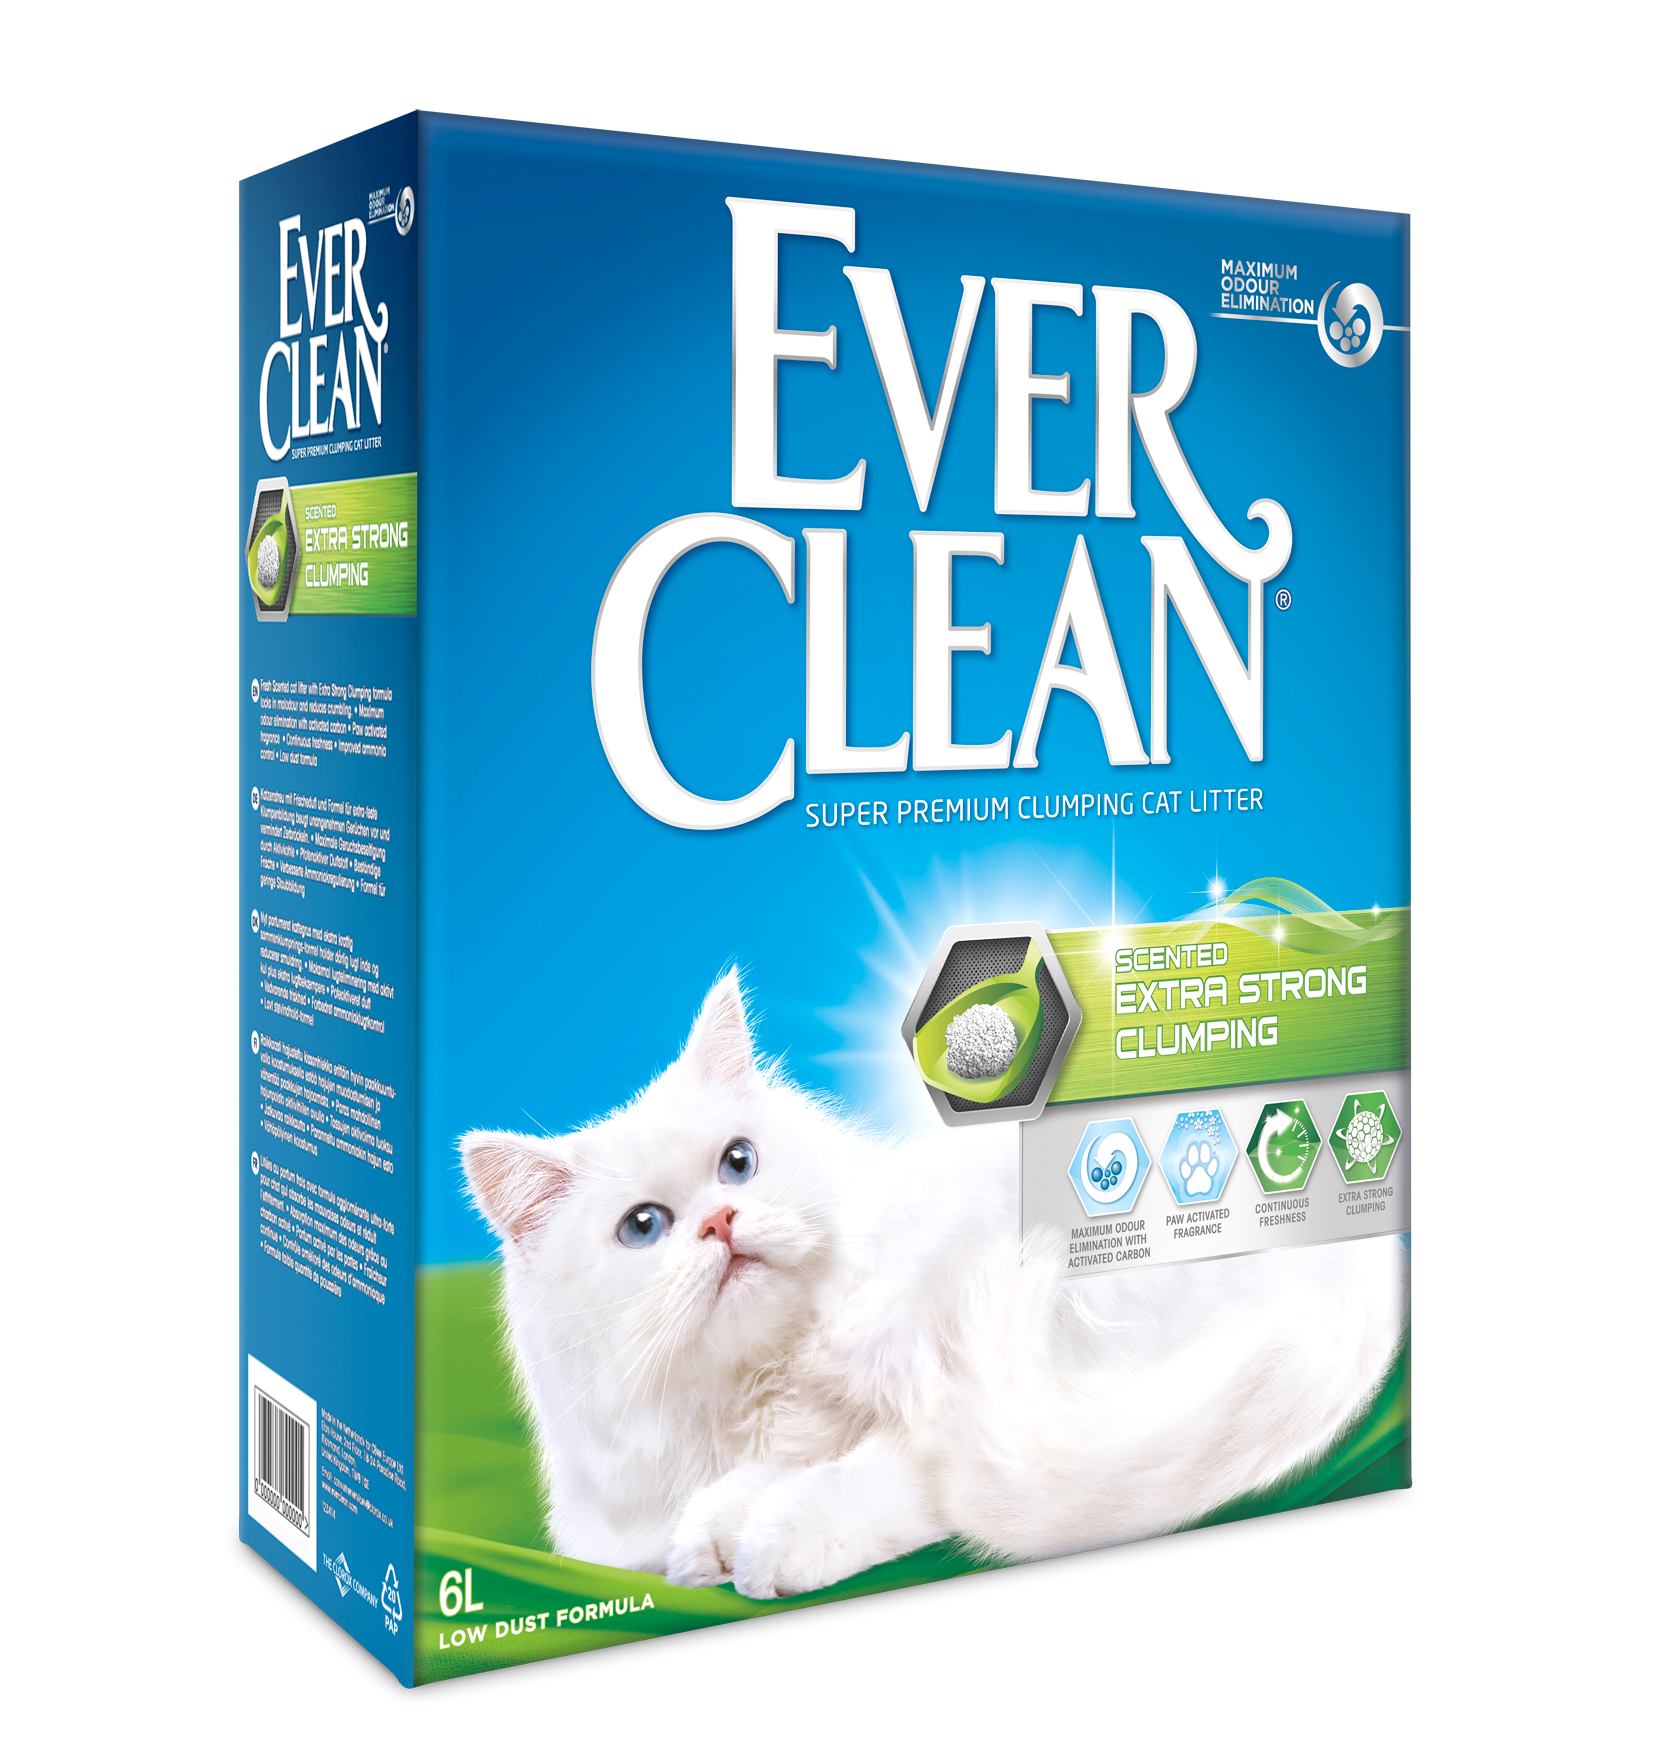 EVER CLEAN Xtra Strong Scented 6L